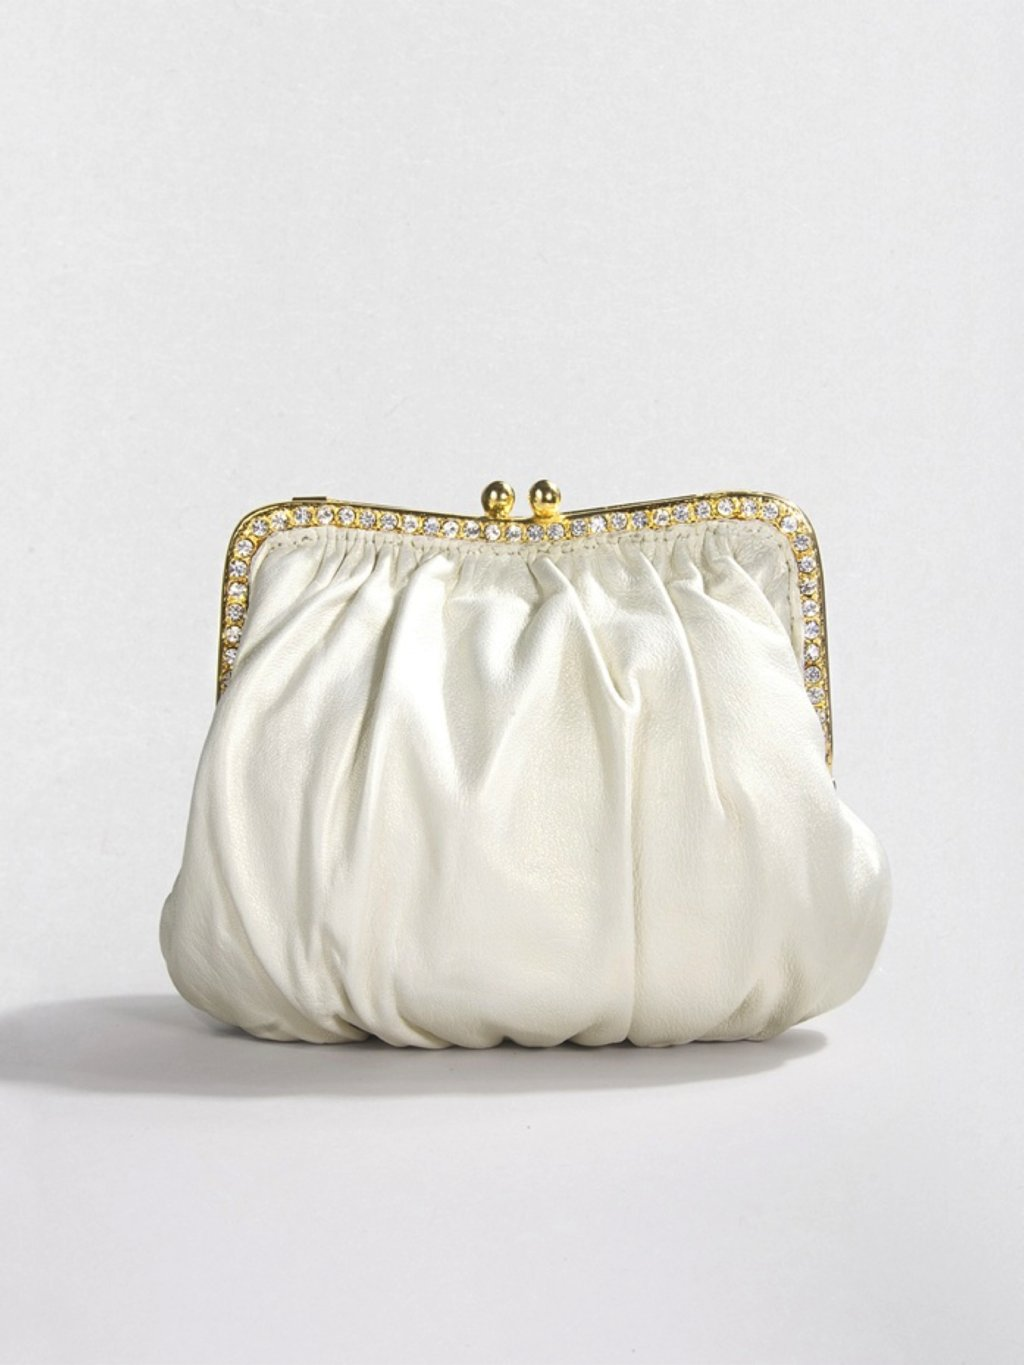 Luxe-wedding-clutch-bridal-accessories-designer-discounts.full